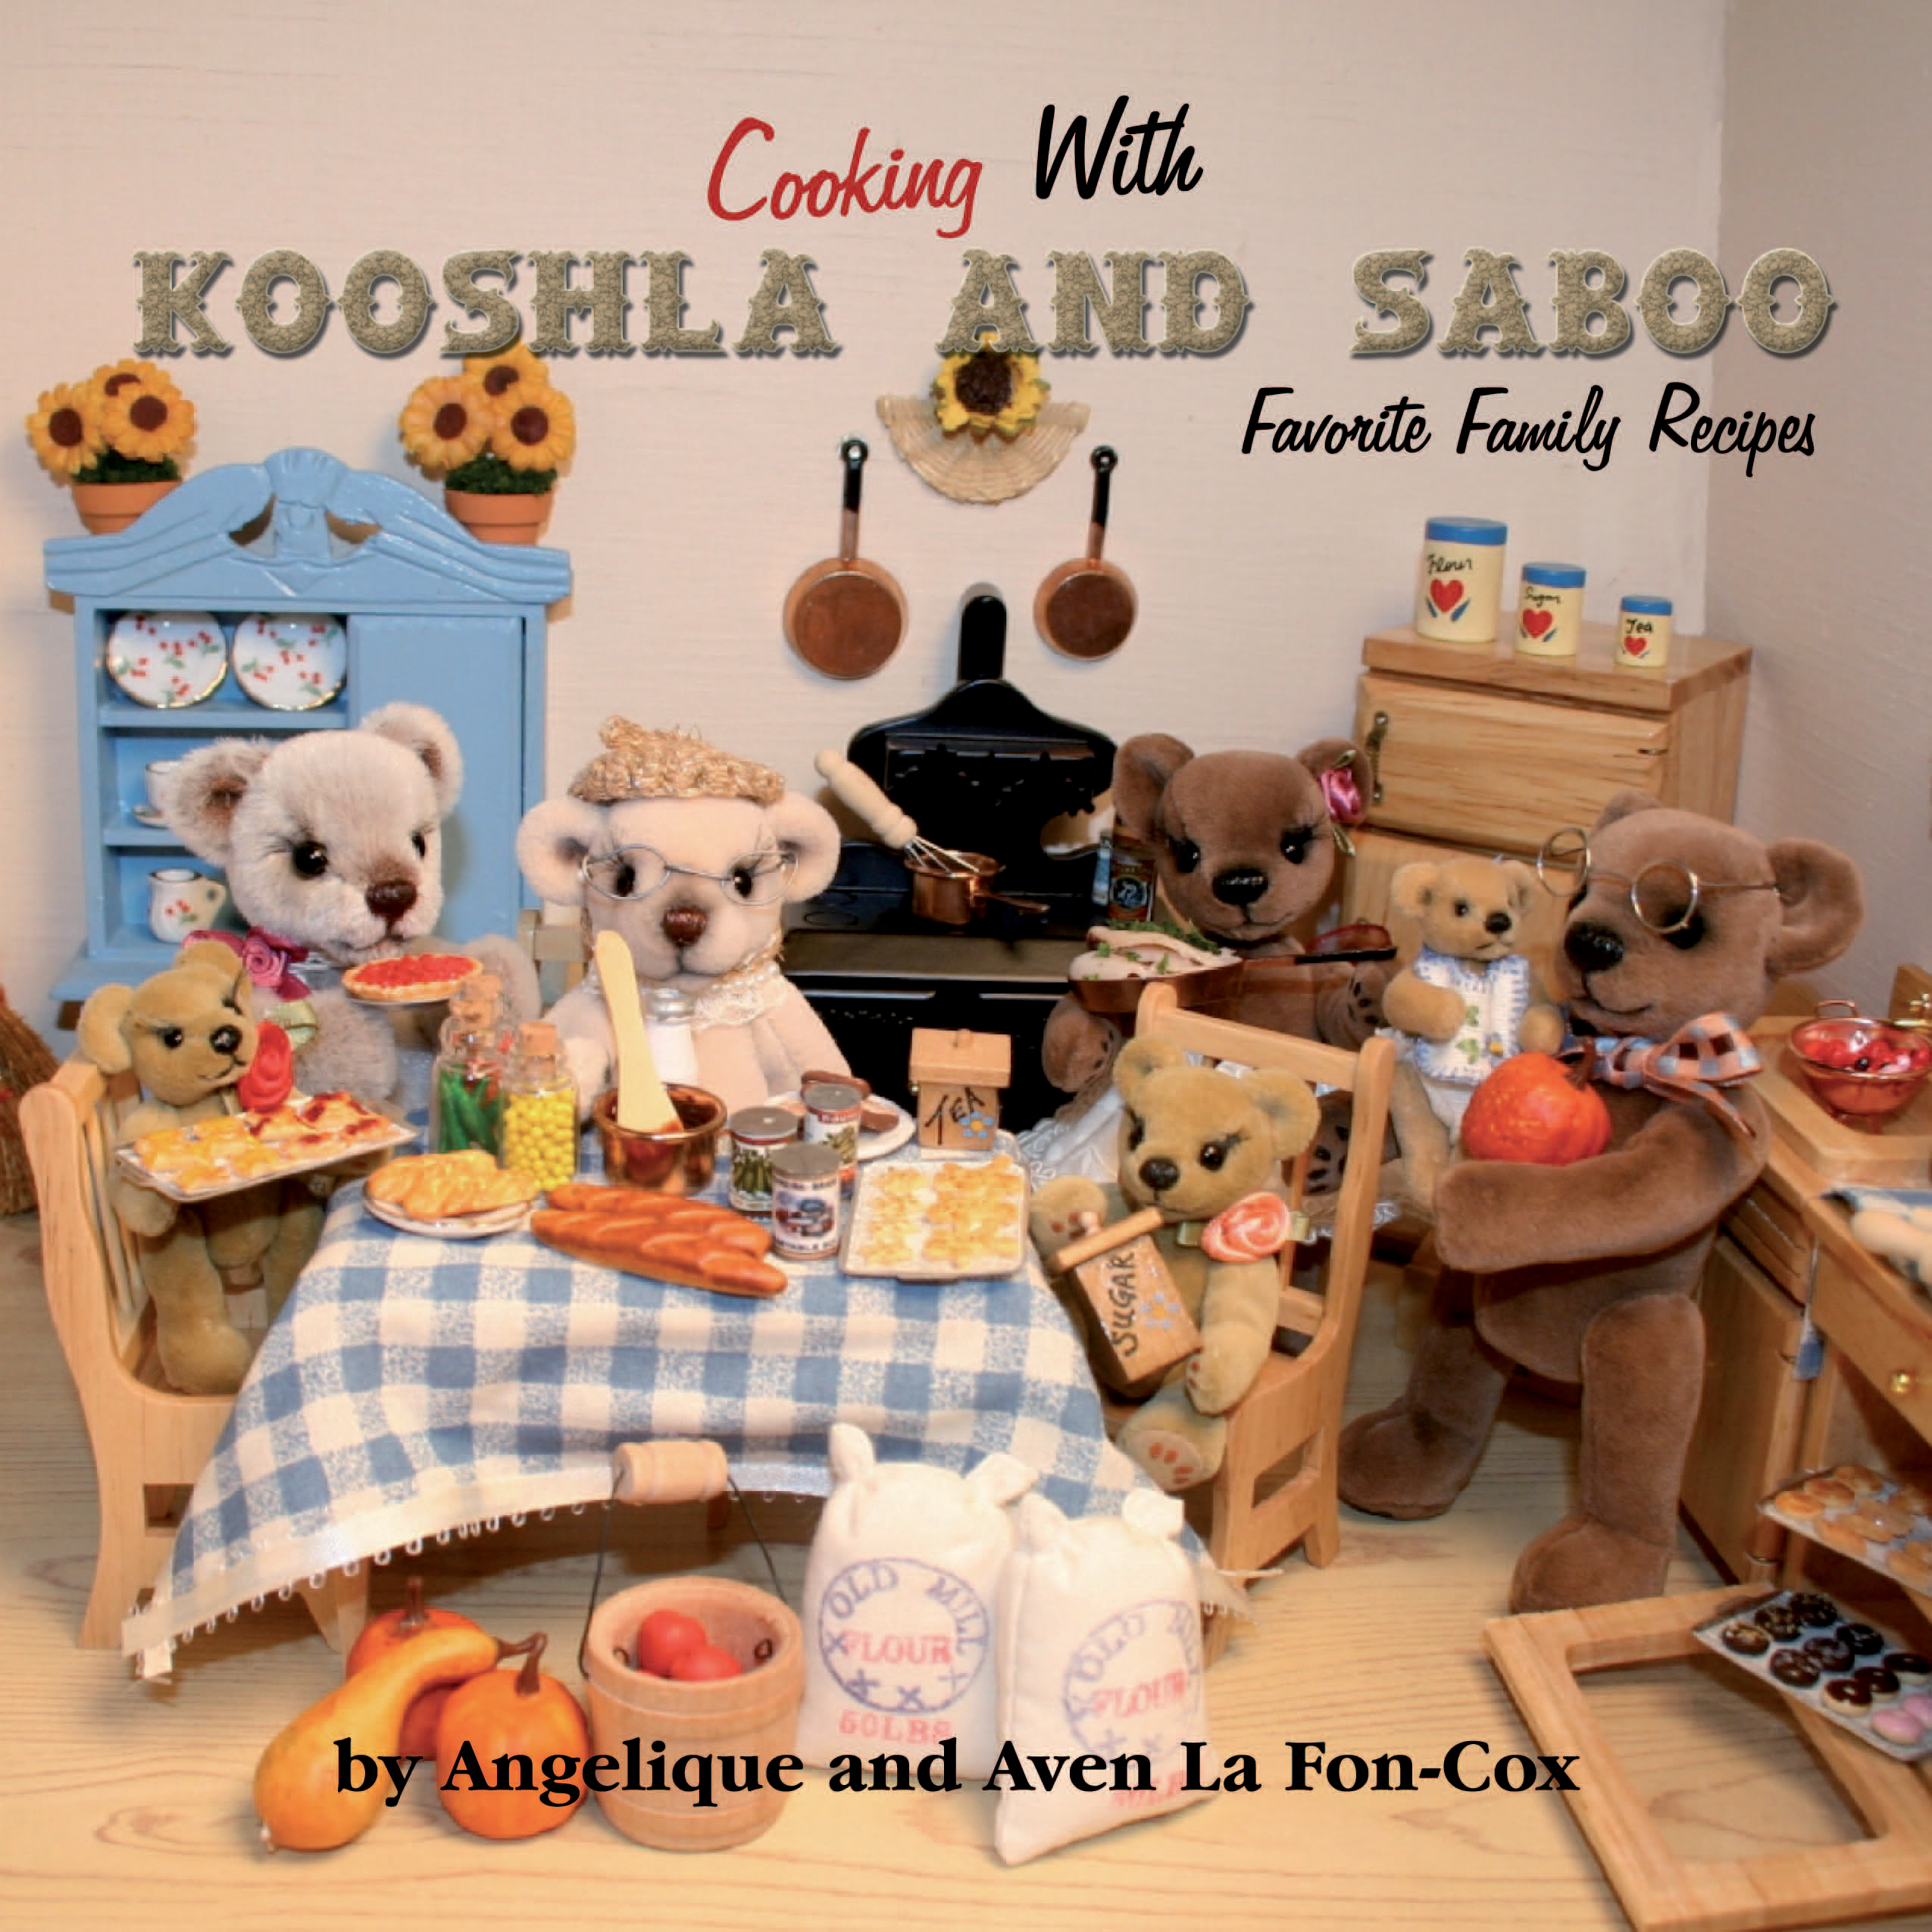 Cooking with Kooshla and Saboo